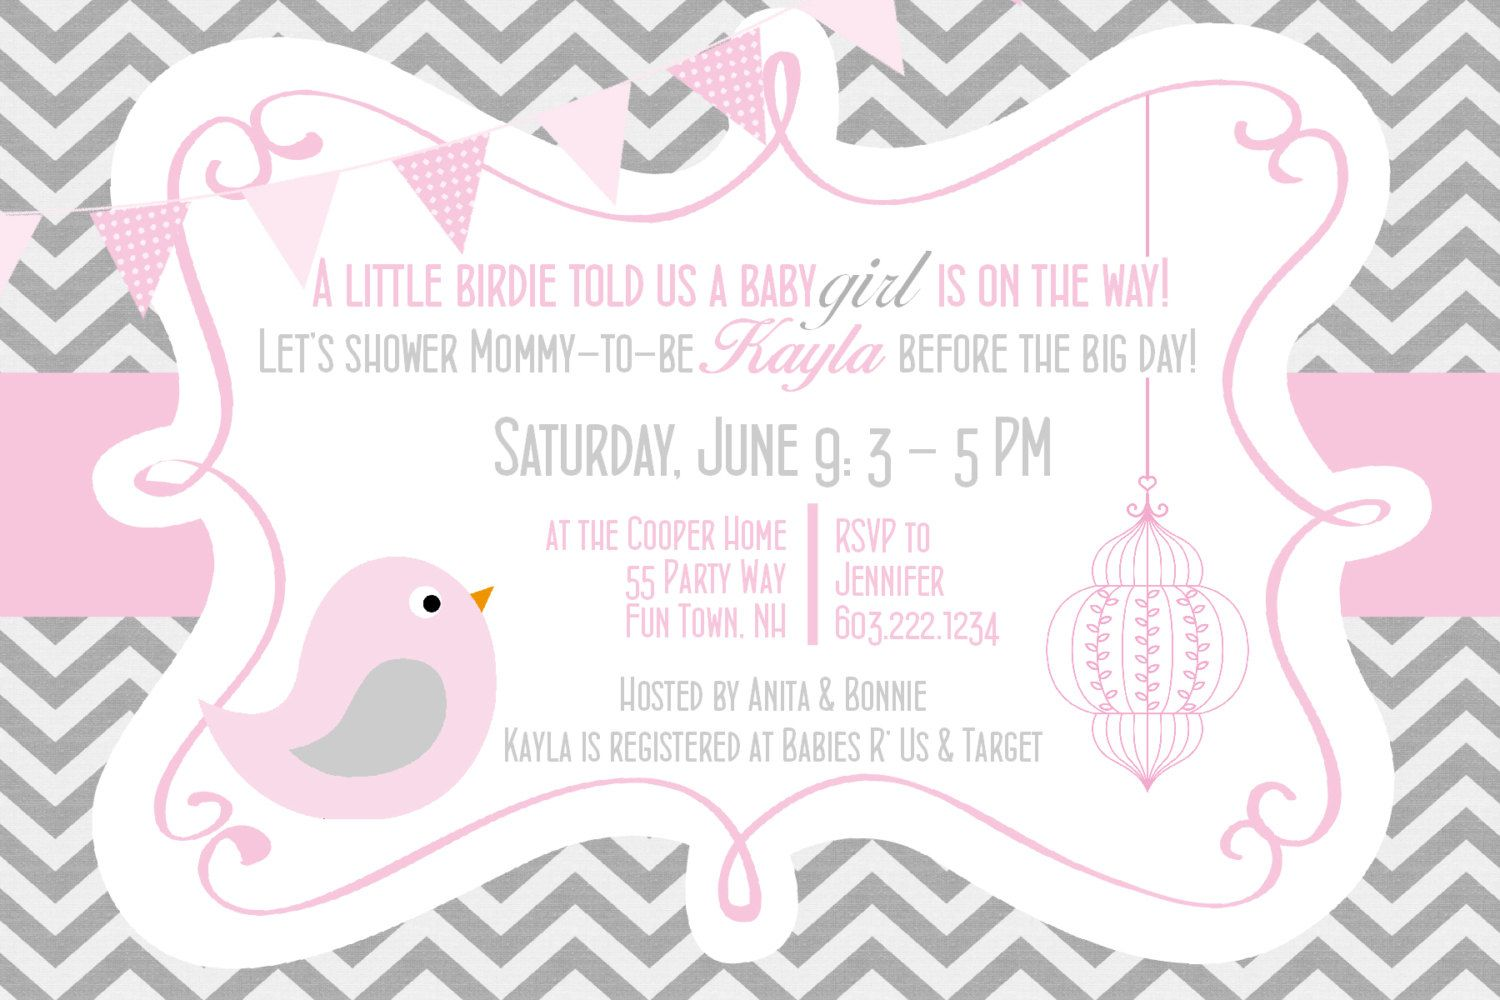 Birds baby shower invitation girl pink gray bird chevron baby birds baby shower invitation girl pink gray bird chevron baby shower pink grey gray filmwisefo Image collections